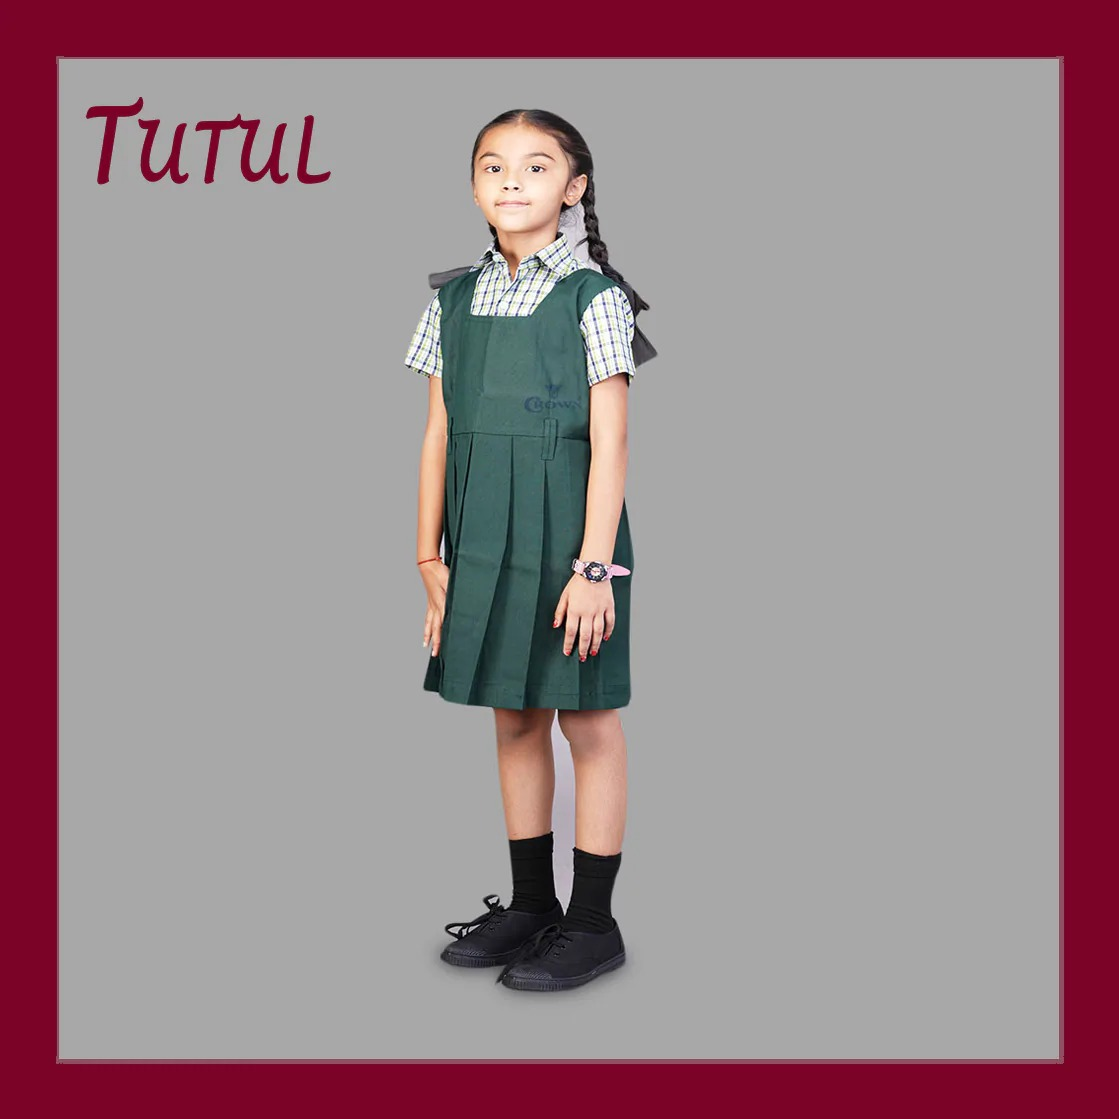 Tutul TN Govt 1 - 5th Std Bottle Green Colour Pinafore (4-5 Years)